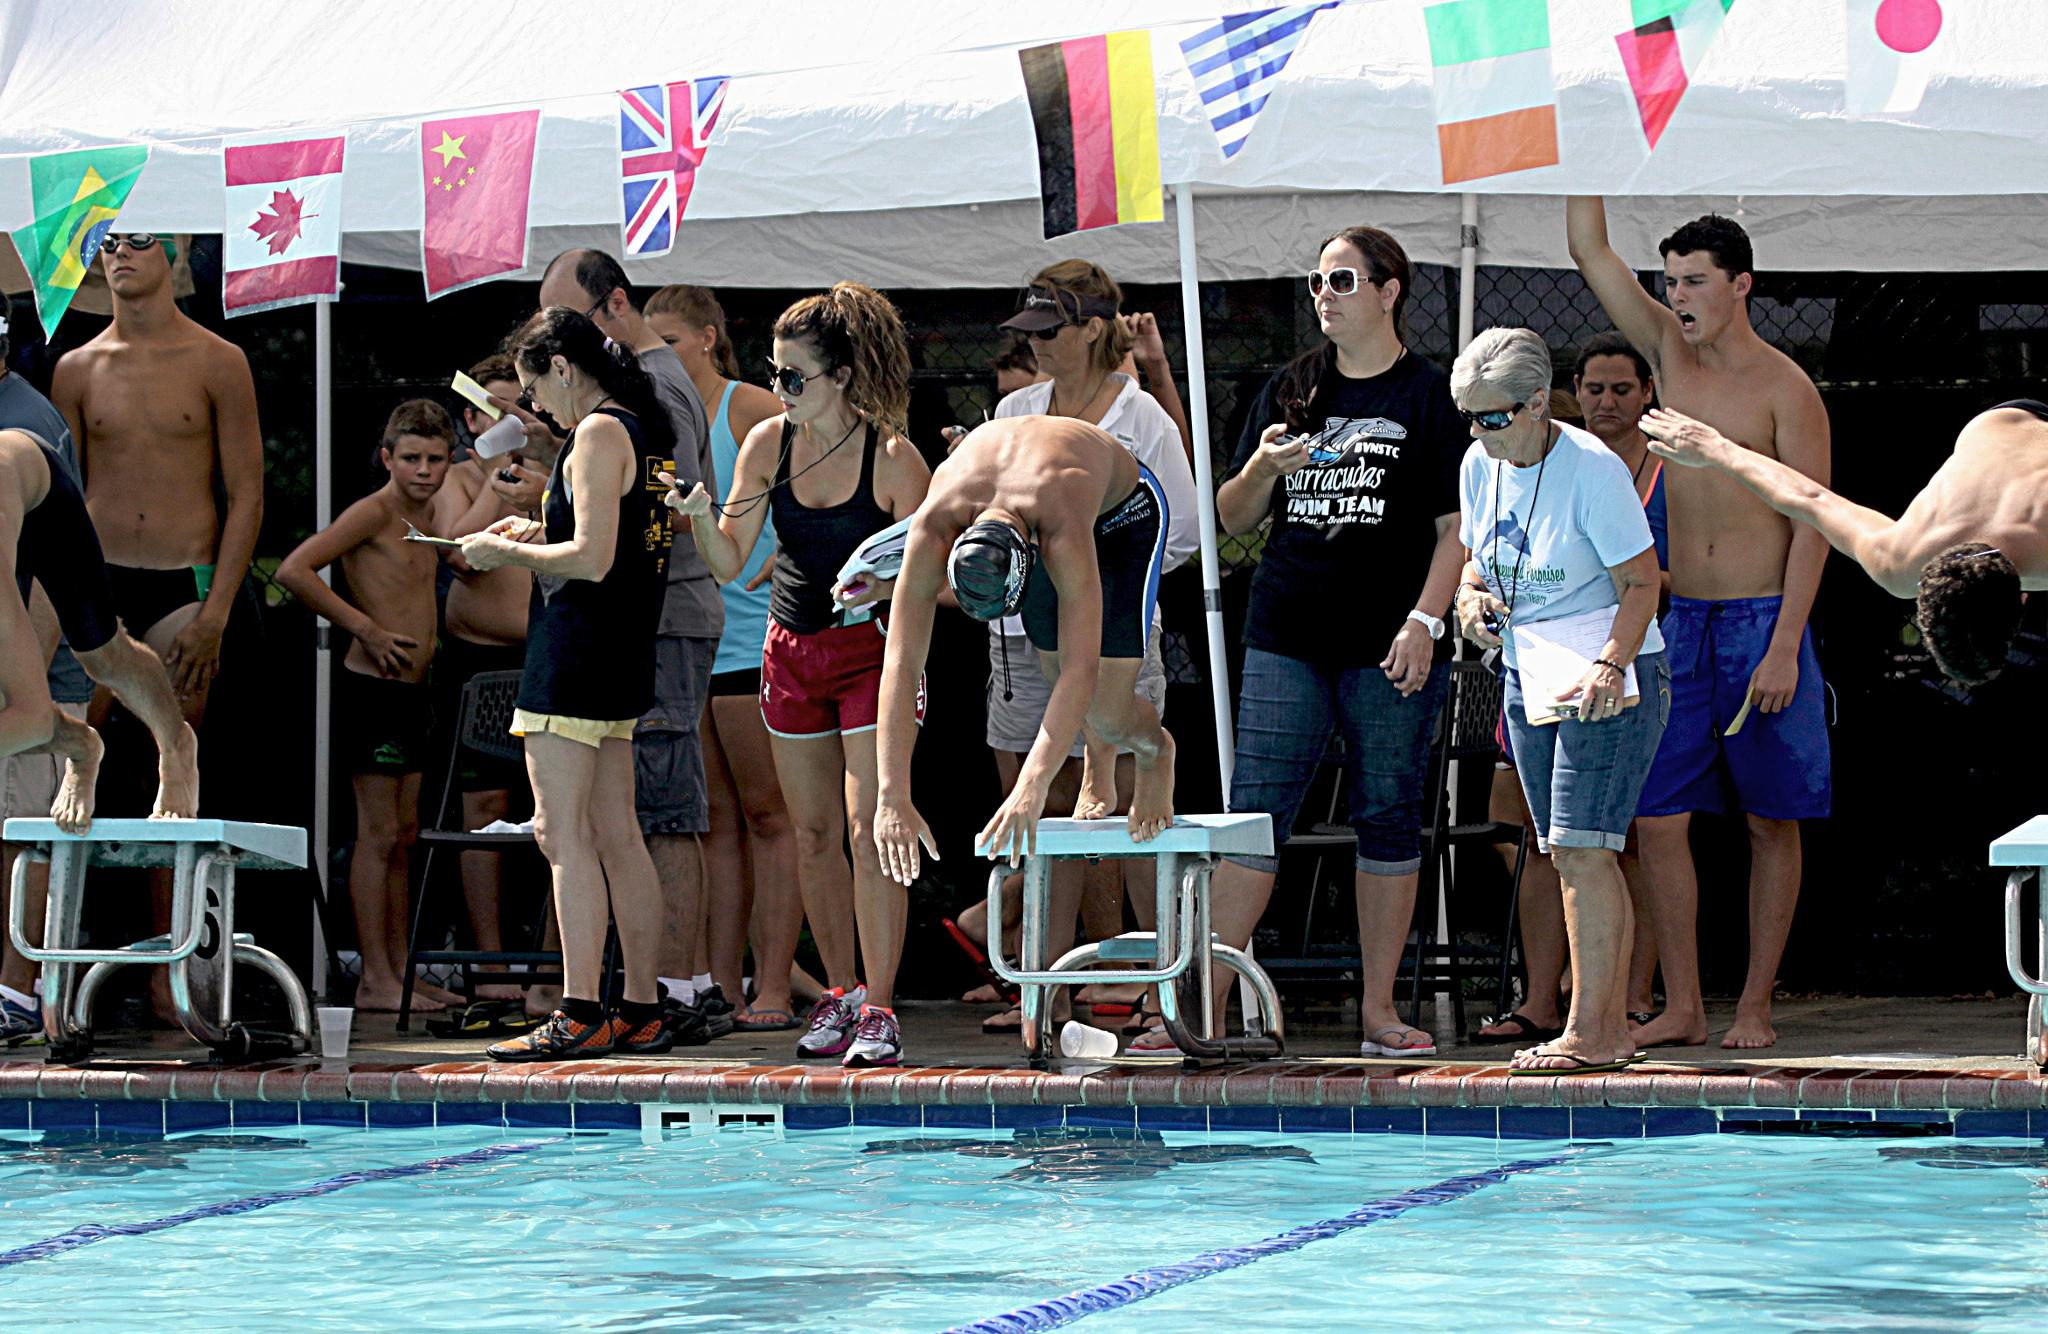 Busy,Busy at the swim meet by mitchellsunday53